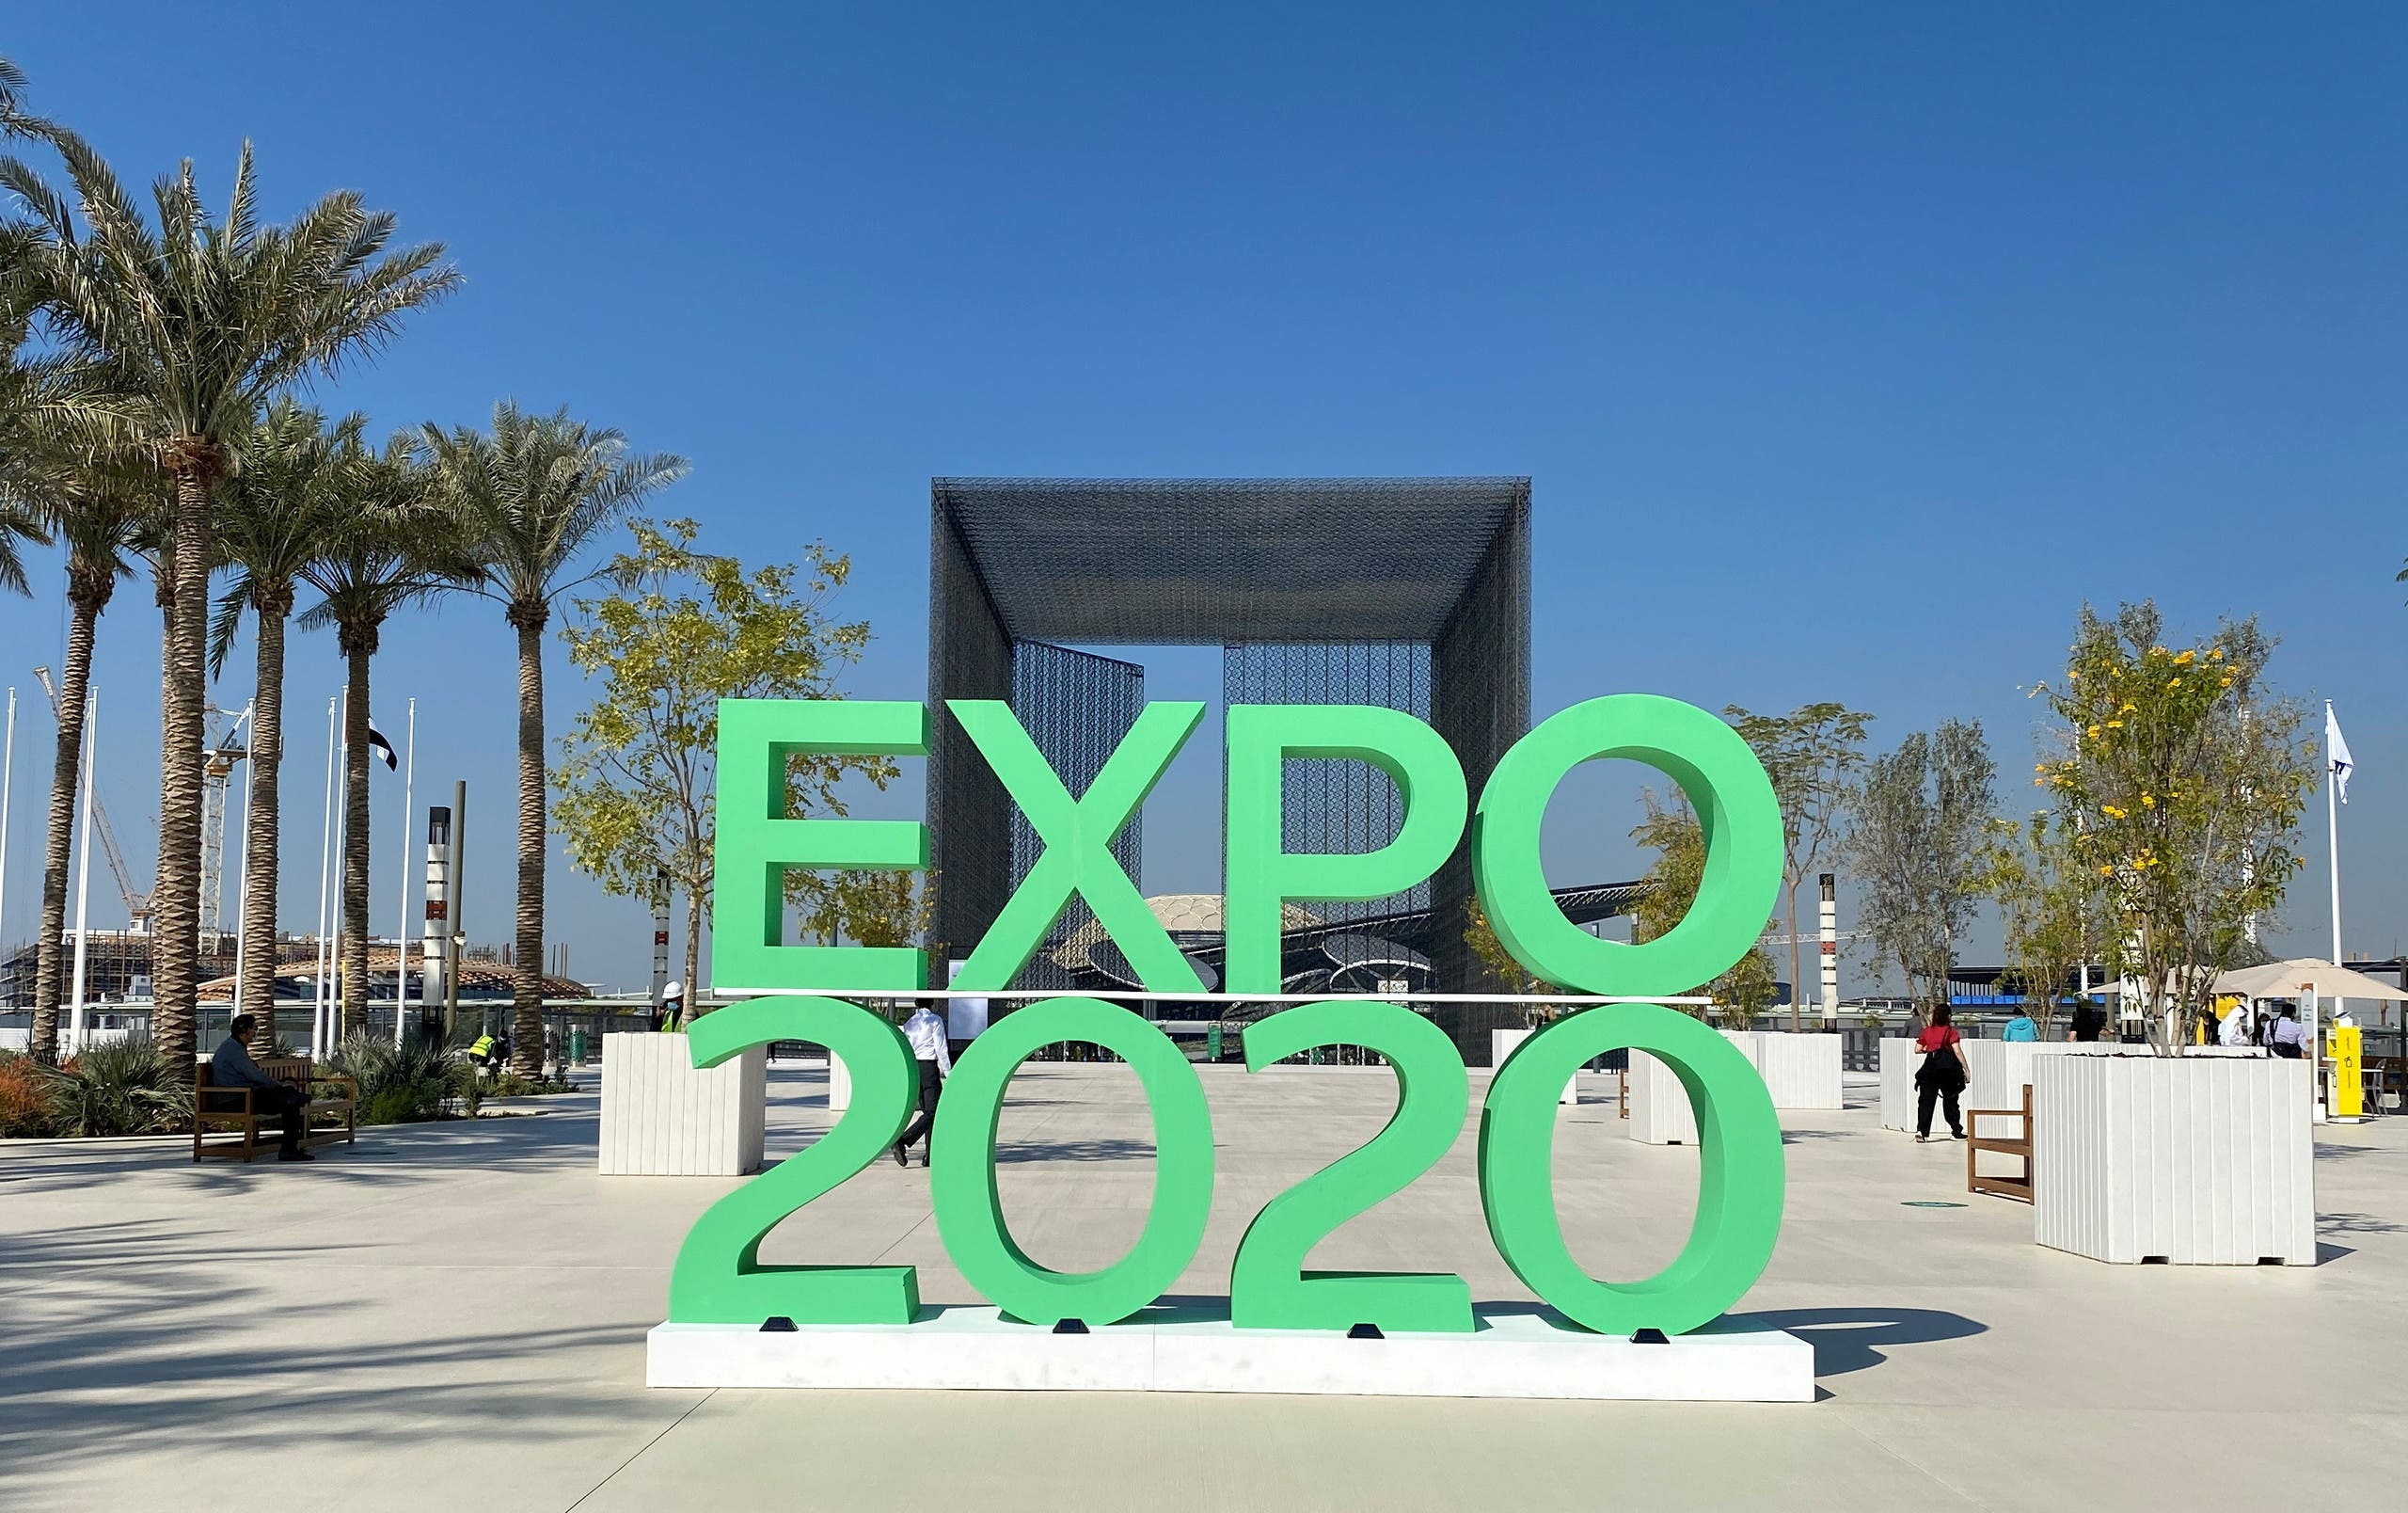 The sign of Dubai Expo 2020 is seen at the entrance of the site in Dubai. (Reuters)